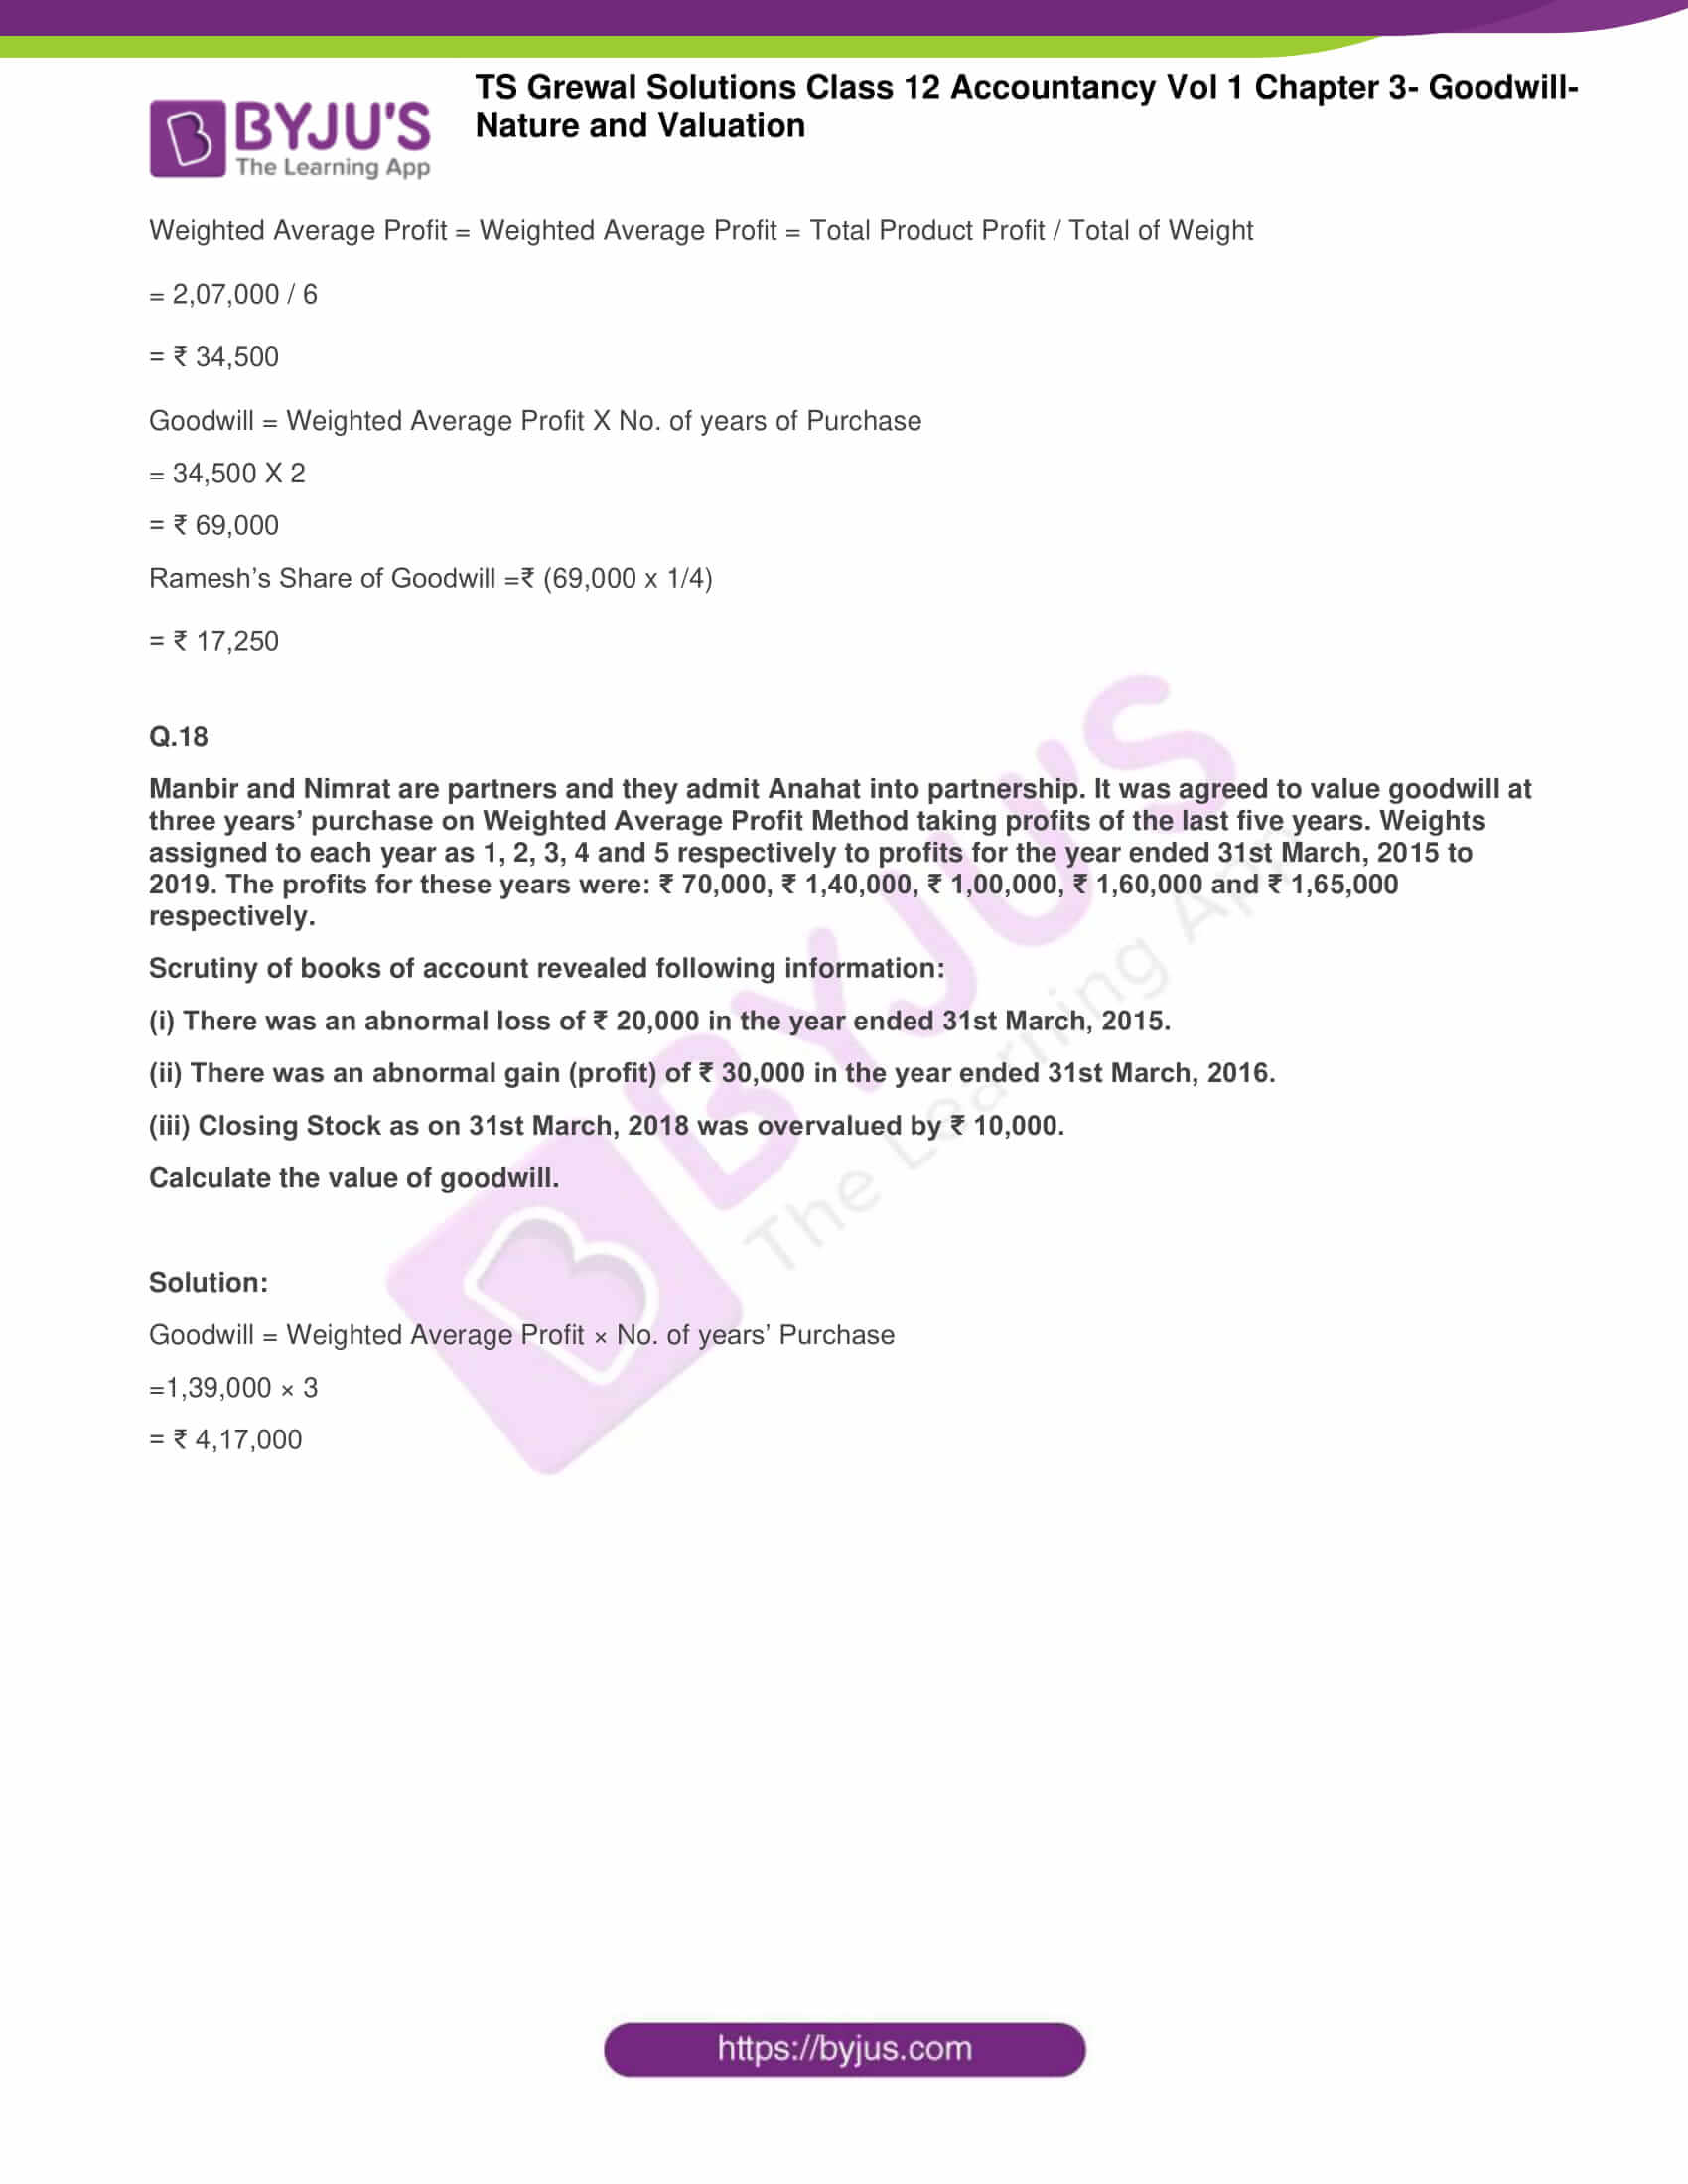 ts grewal solutions for class 12 accountancy vol 1 chapter 316